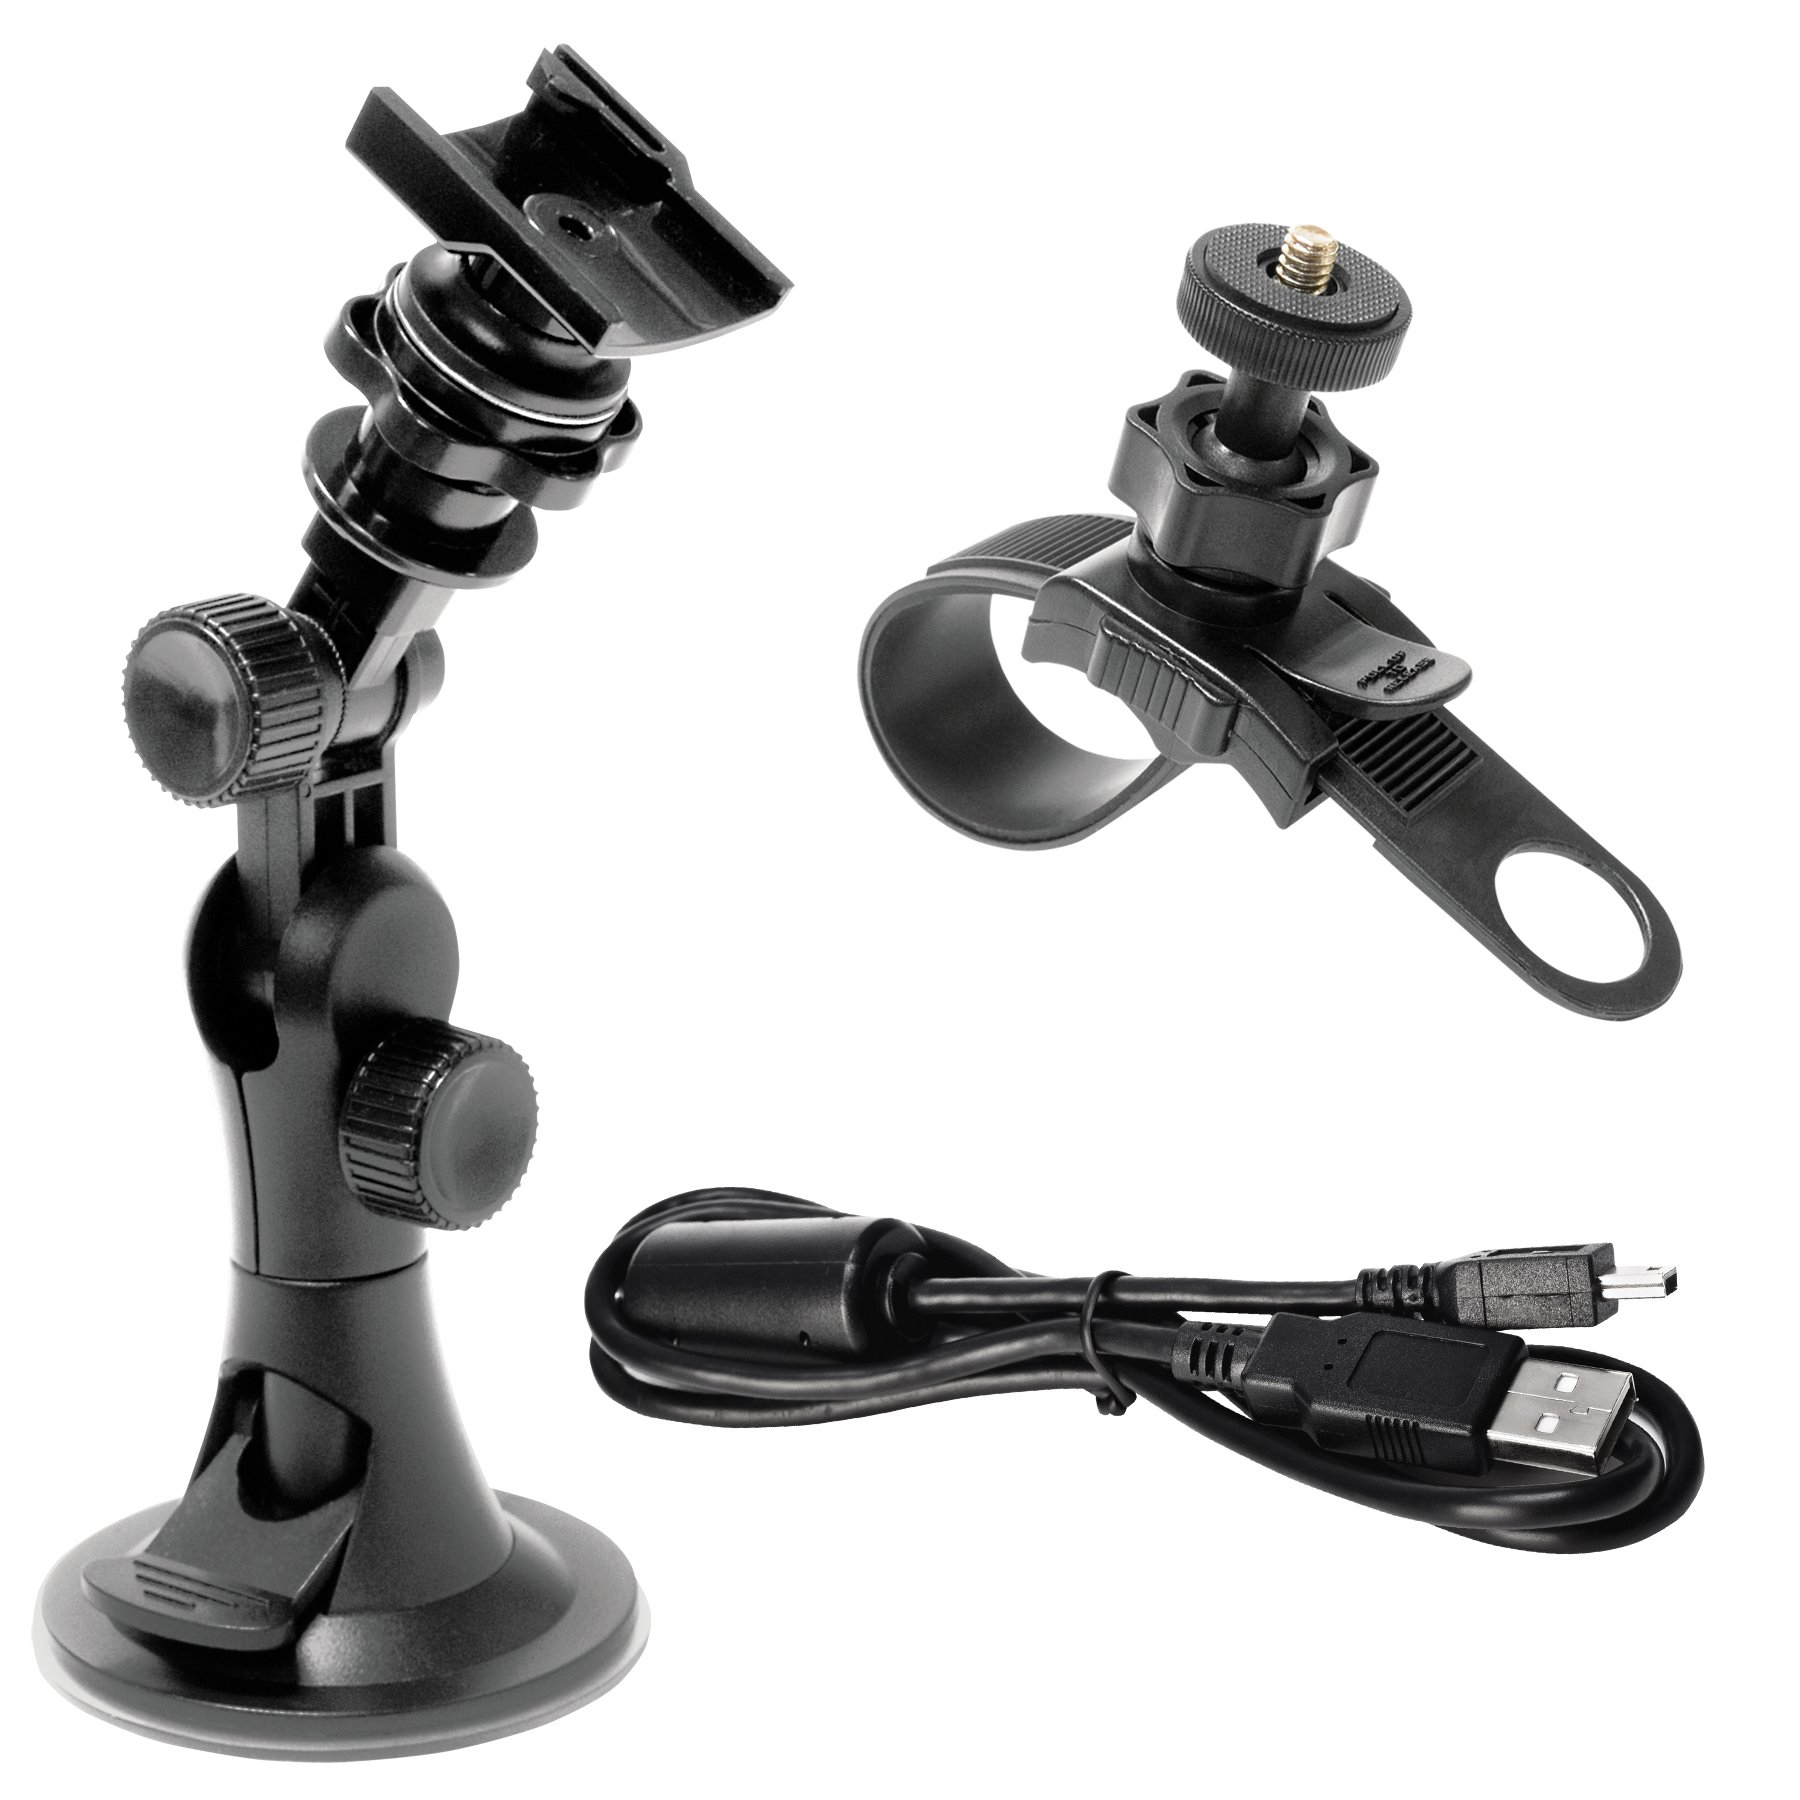 Midland Accessory Value Pack for Midland Action Cameras.Includes Windshield Suction Cup and Handle Bar Mount with USB Cable XTAVP-1